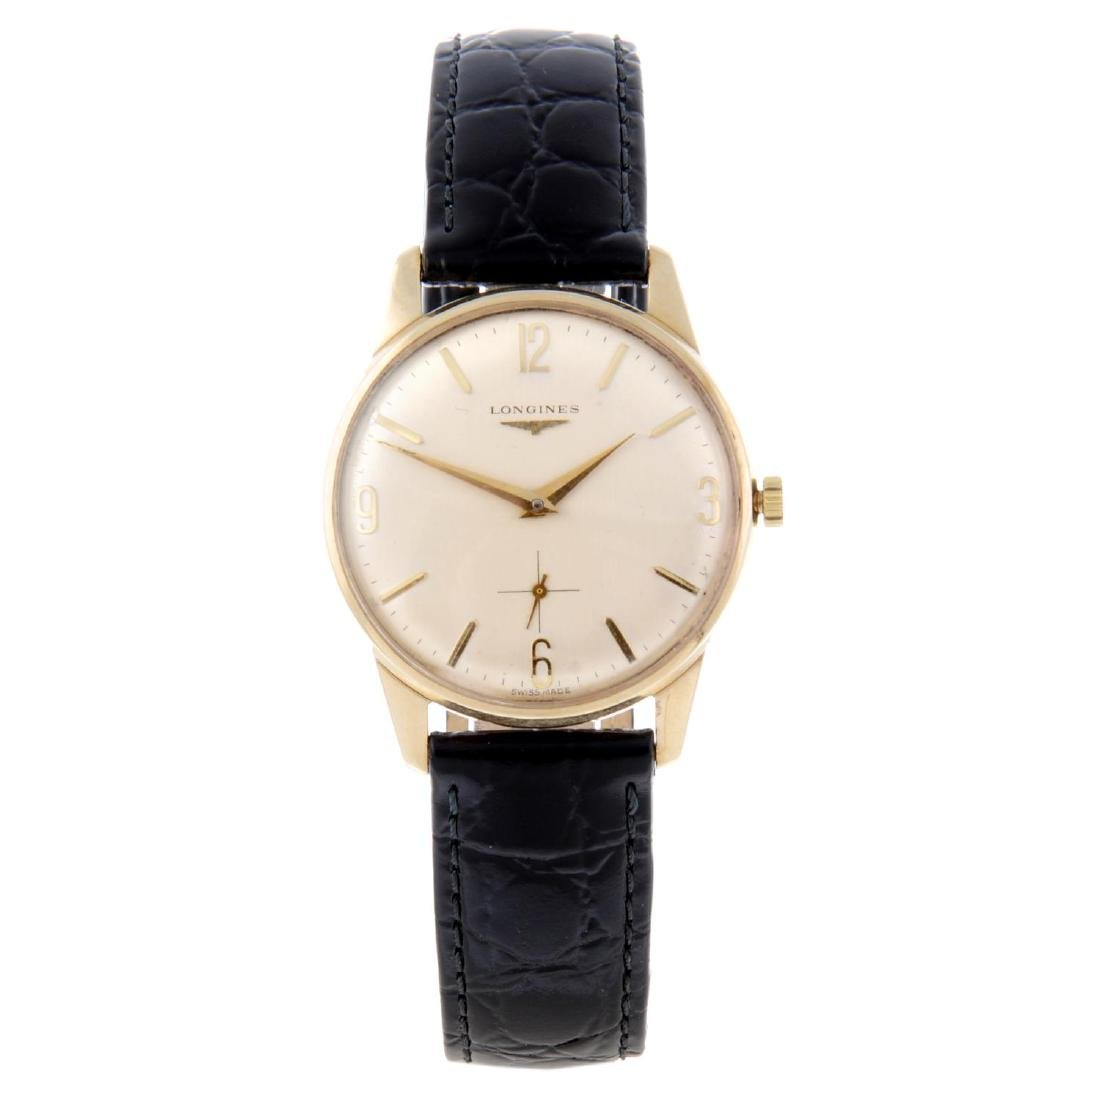 LONGINES - a gentleman's wrist watch. 9ct yellow gold